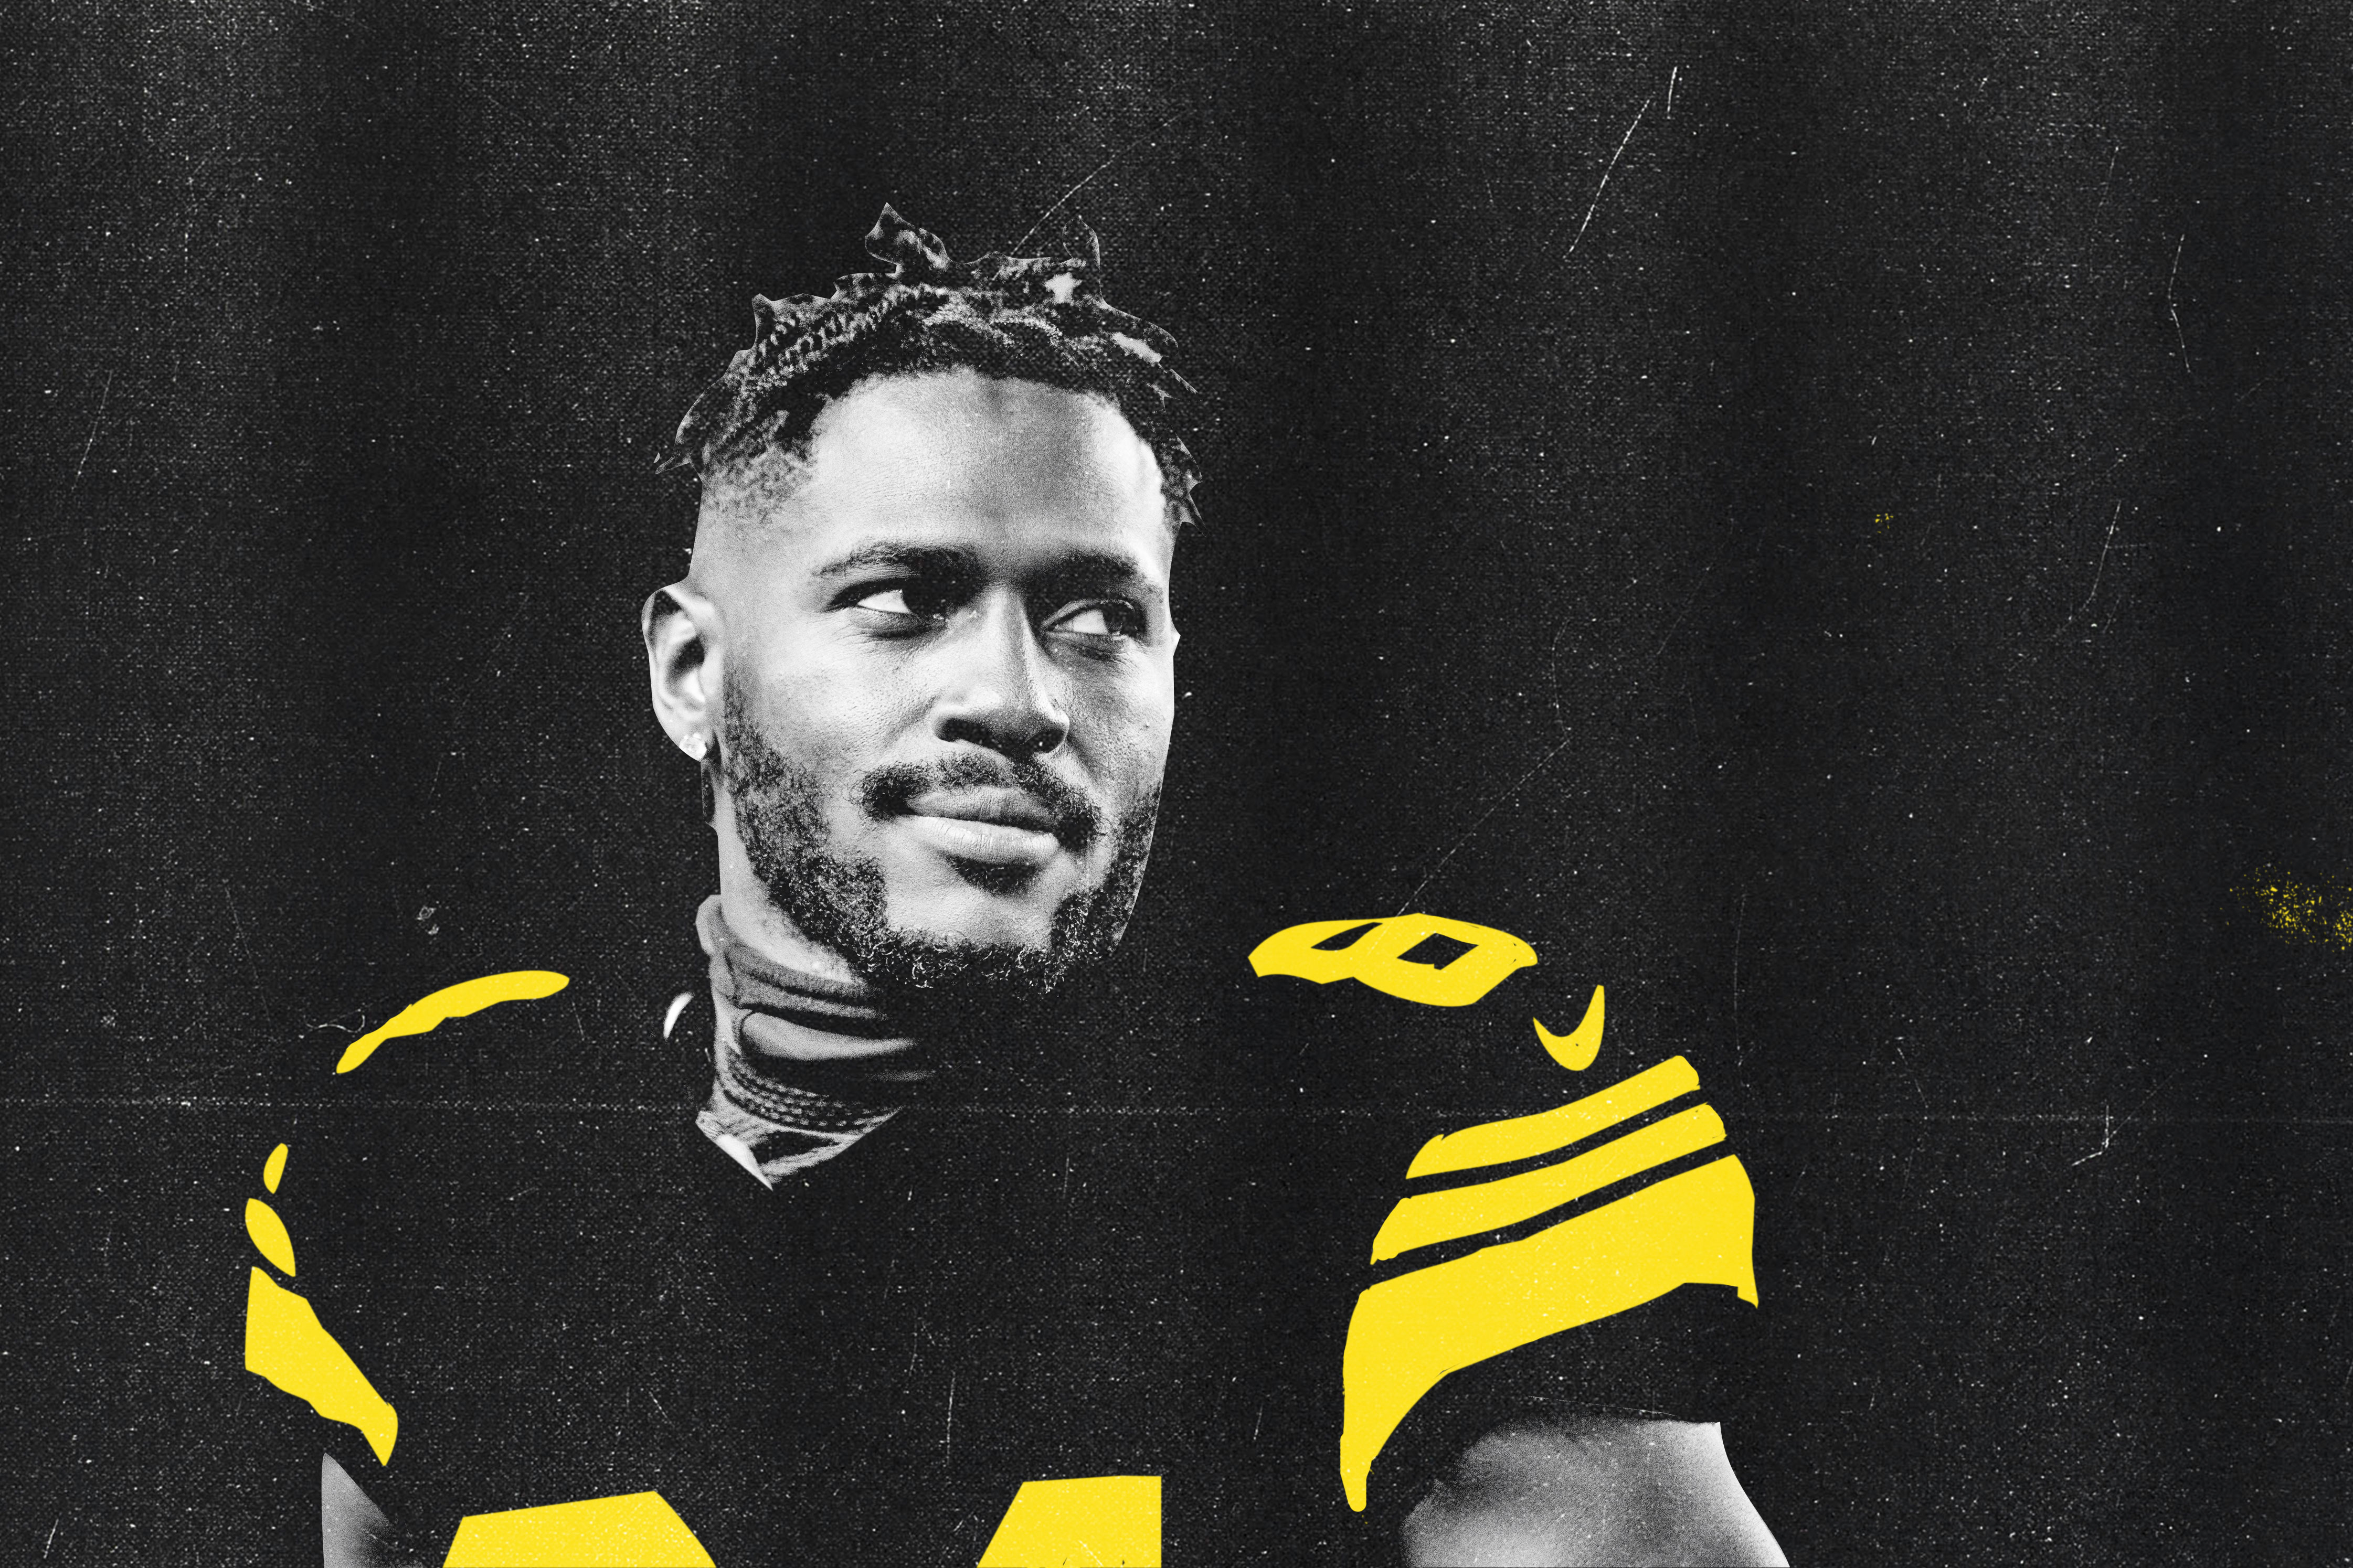 db496a89b93 The Antonio Brown Trade Market Will Shape the NFL Offseason in Pittsburgh  and Beyond. On the heels of a tumultuous year, the Steelers have ...